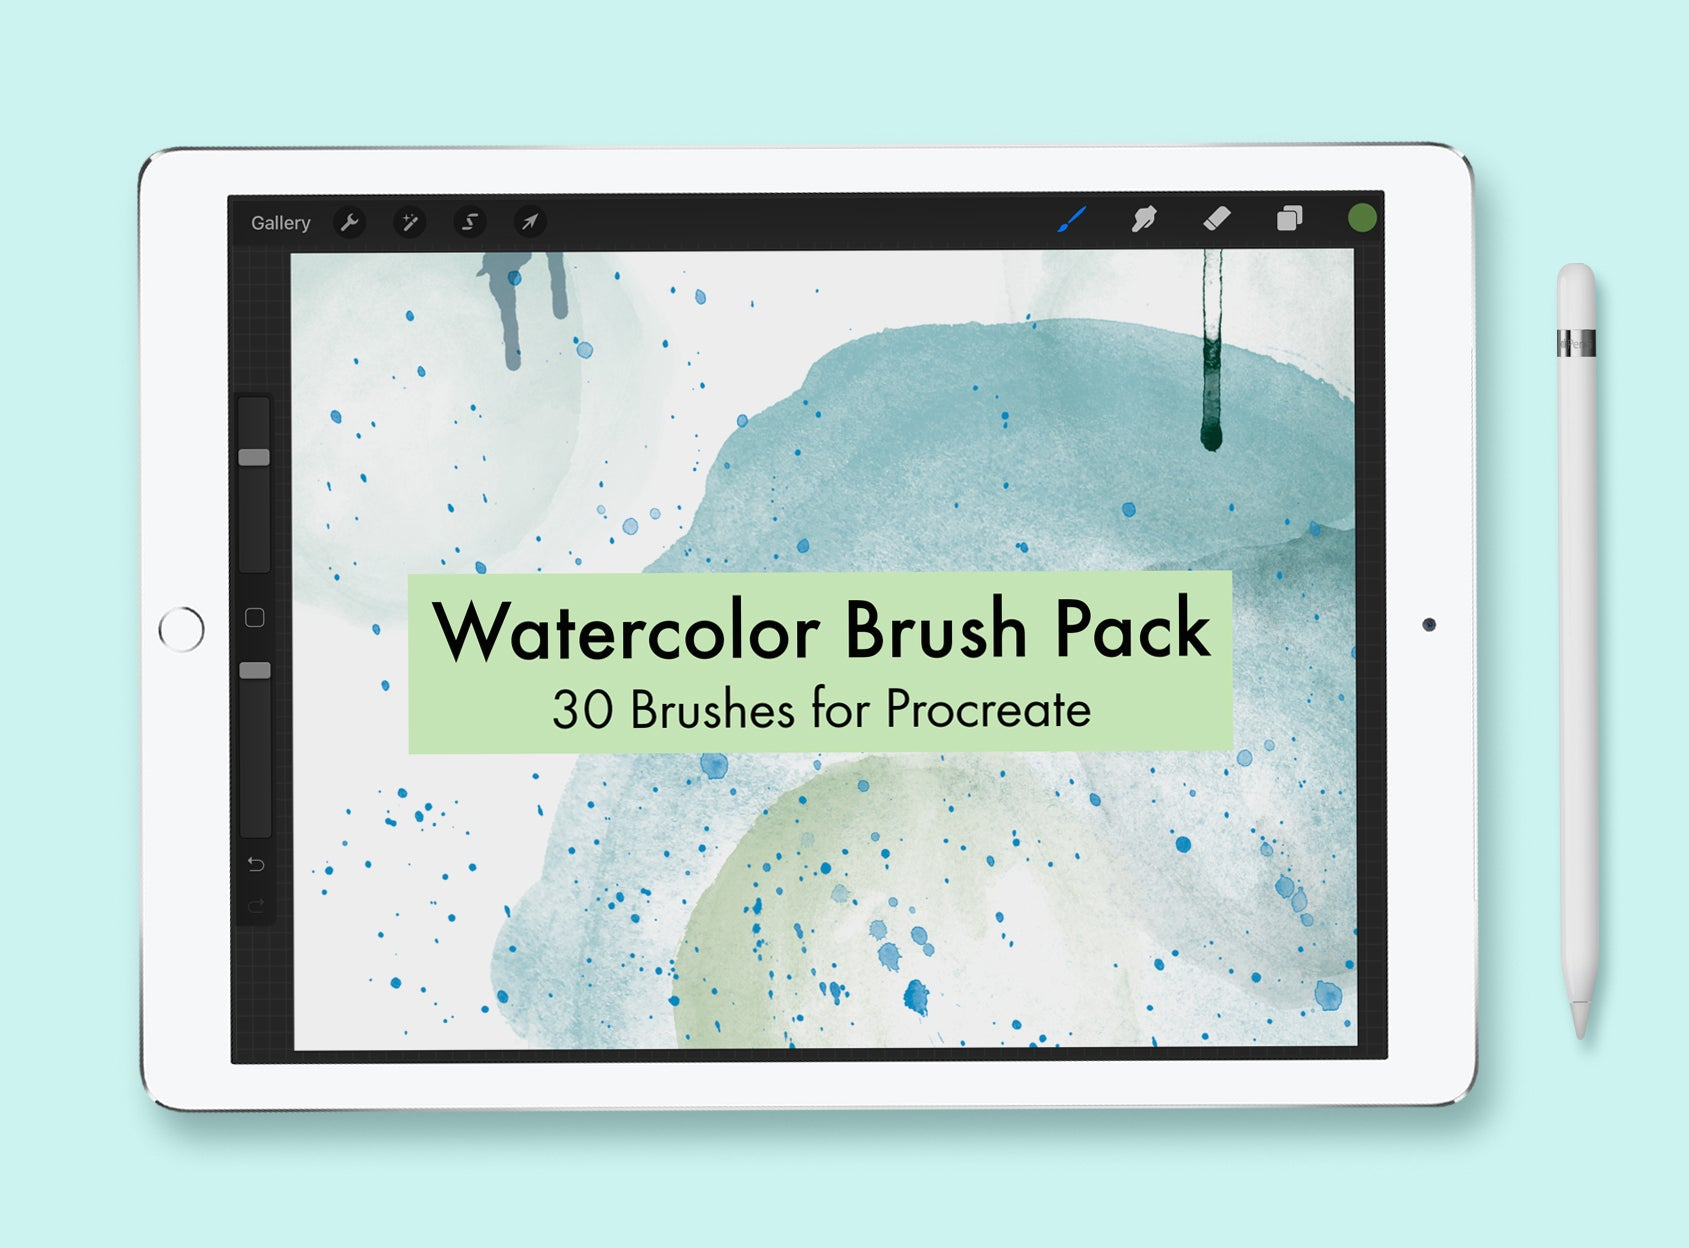 iPad mockup with text overlay: watercolor brush pack for procreate.